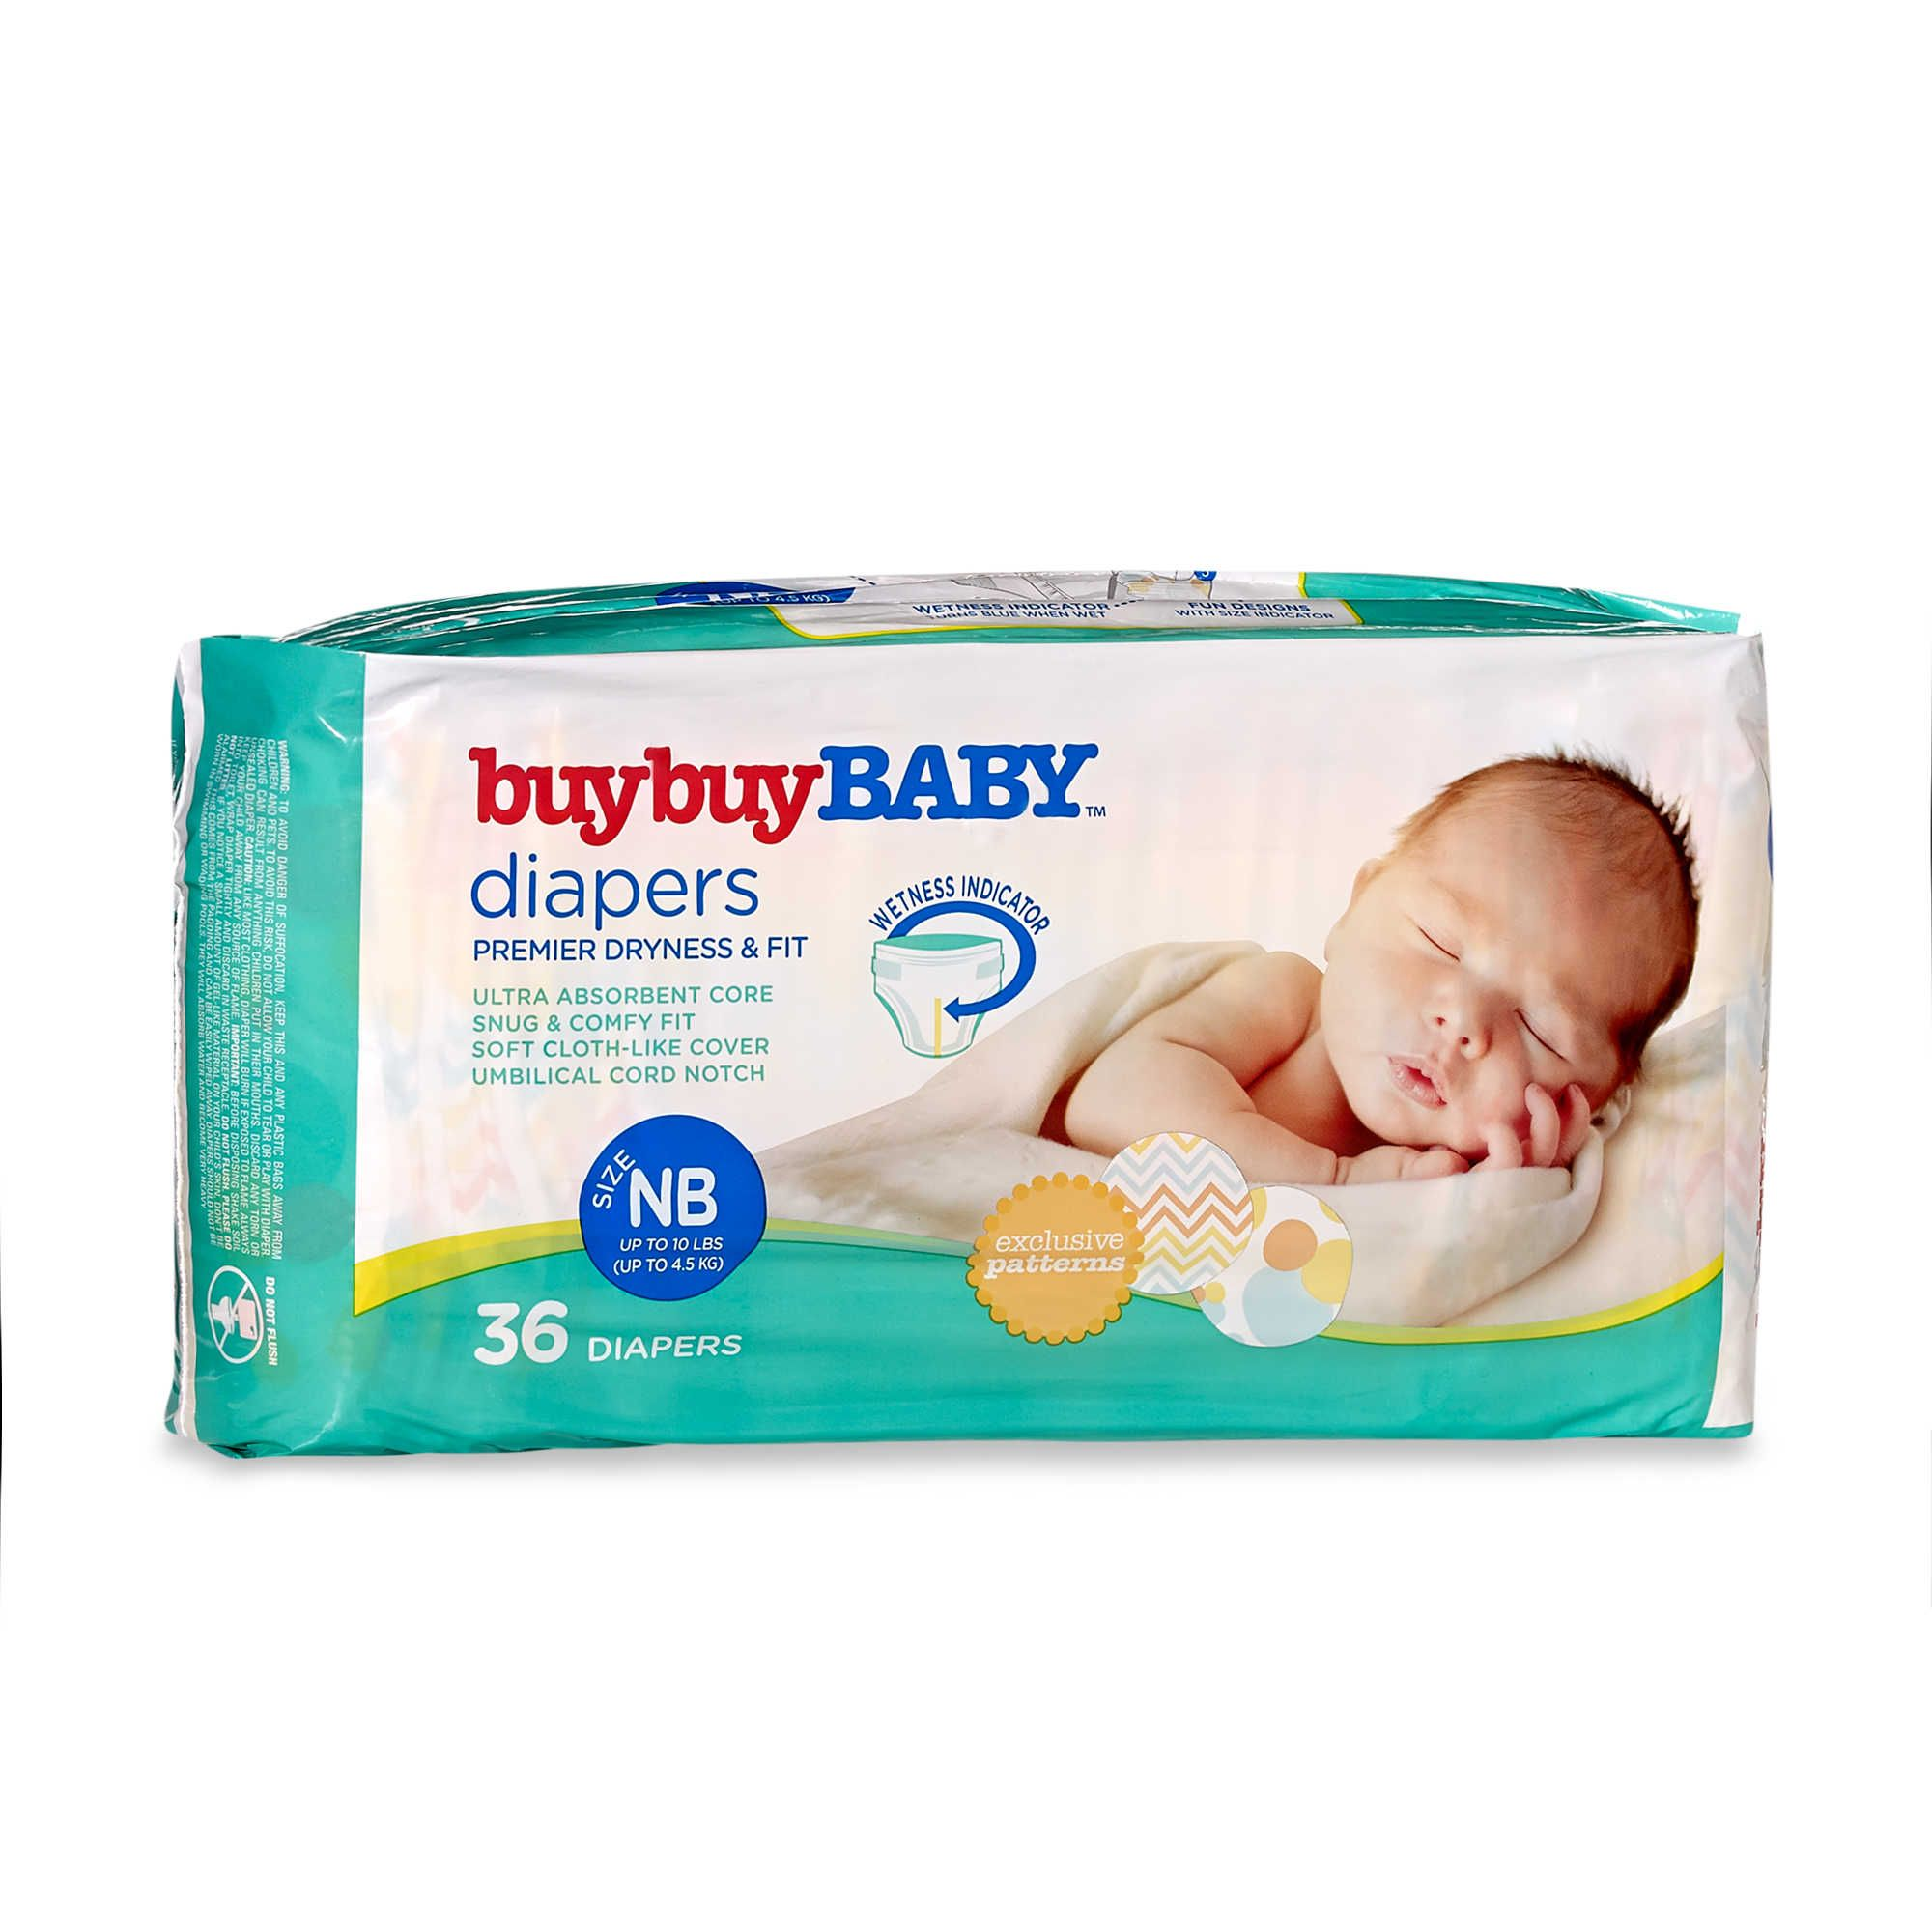 Diapers 365 days: customer reviews 31